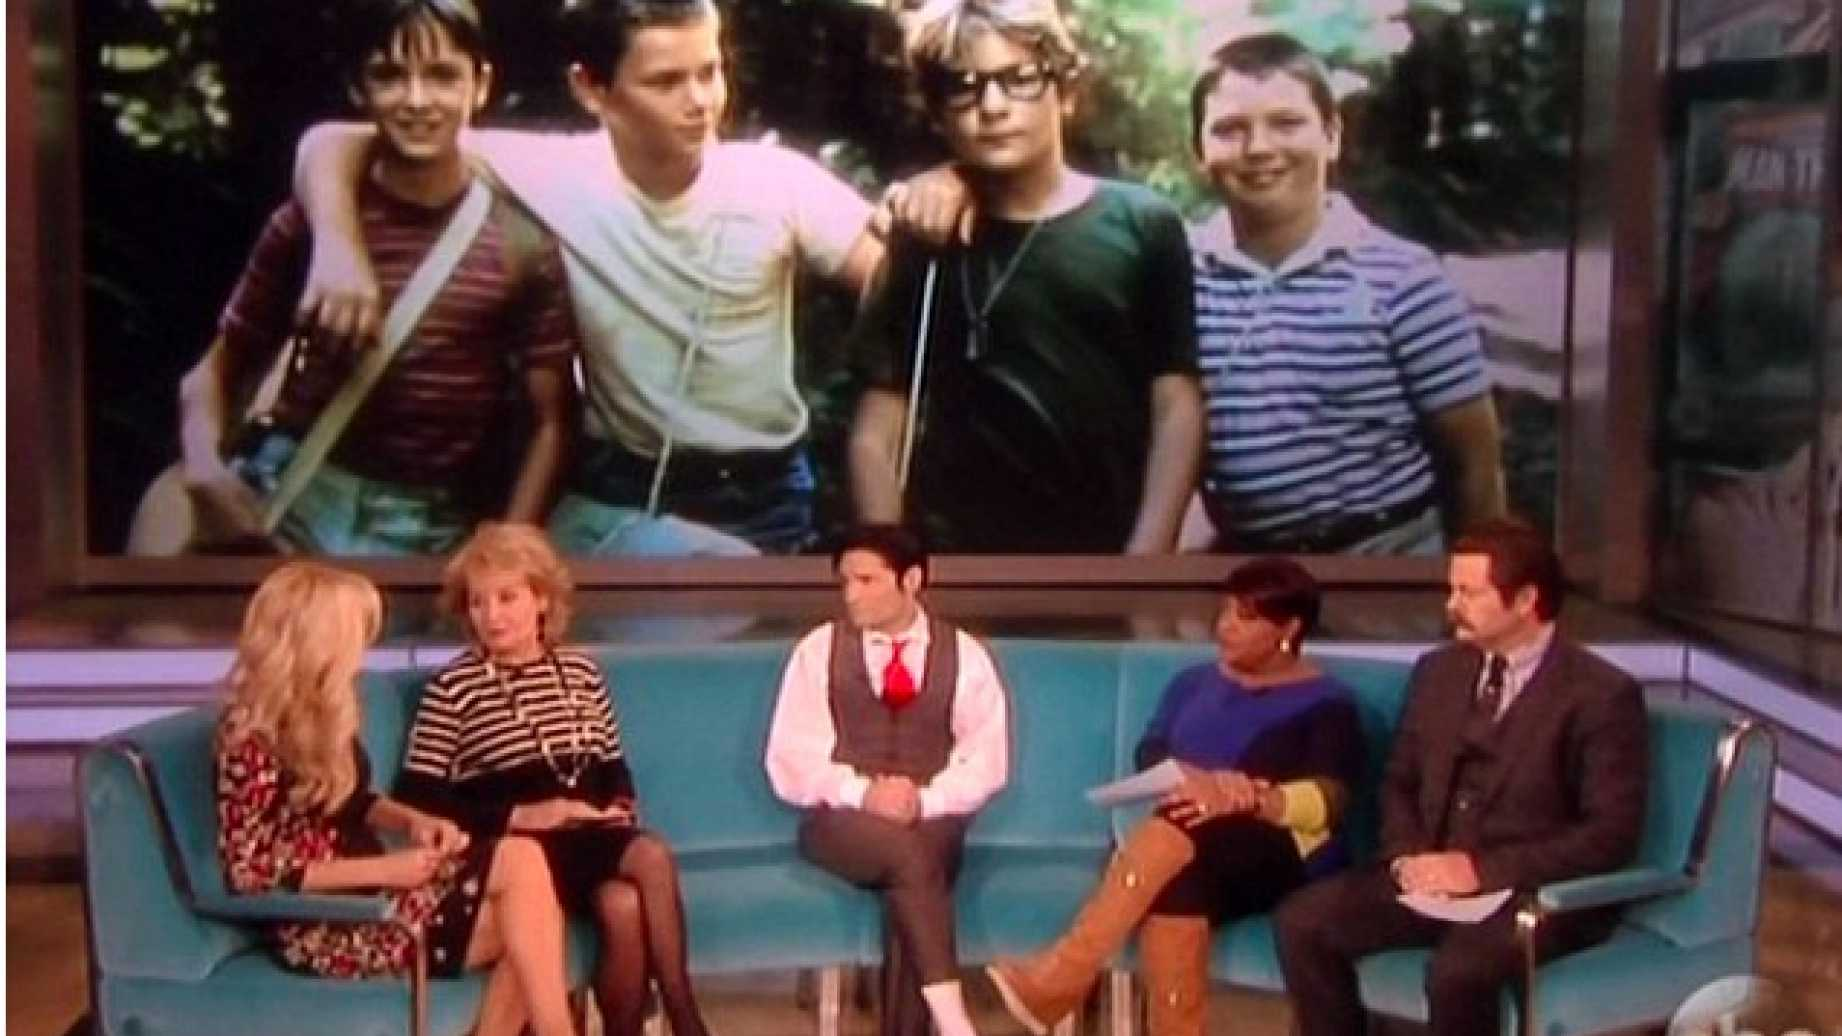 Crazy Flashback - Corey Feldman Calls Out Hollywood Pedophilia And Gets Scolded By Barbara Walters - VIDEO